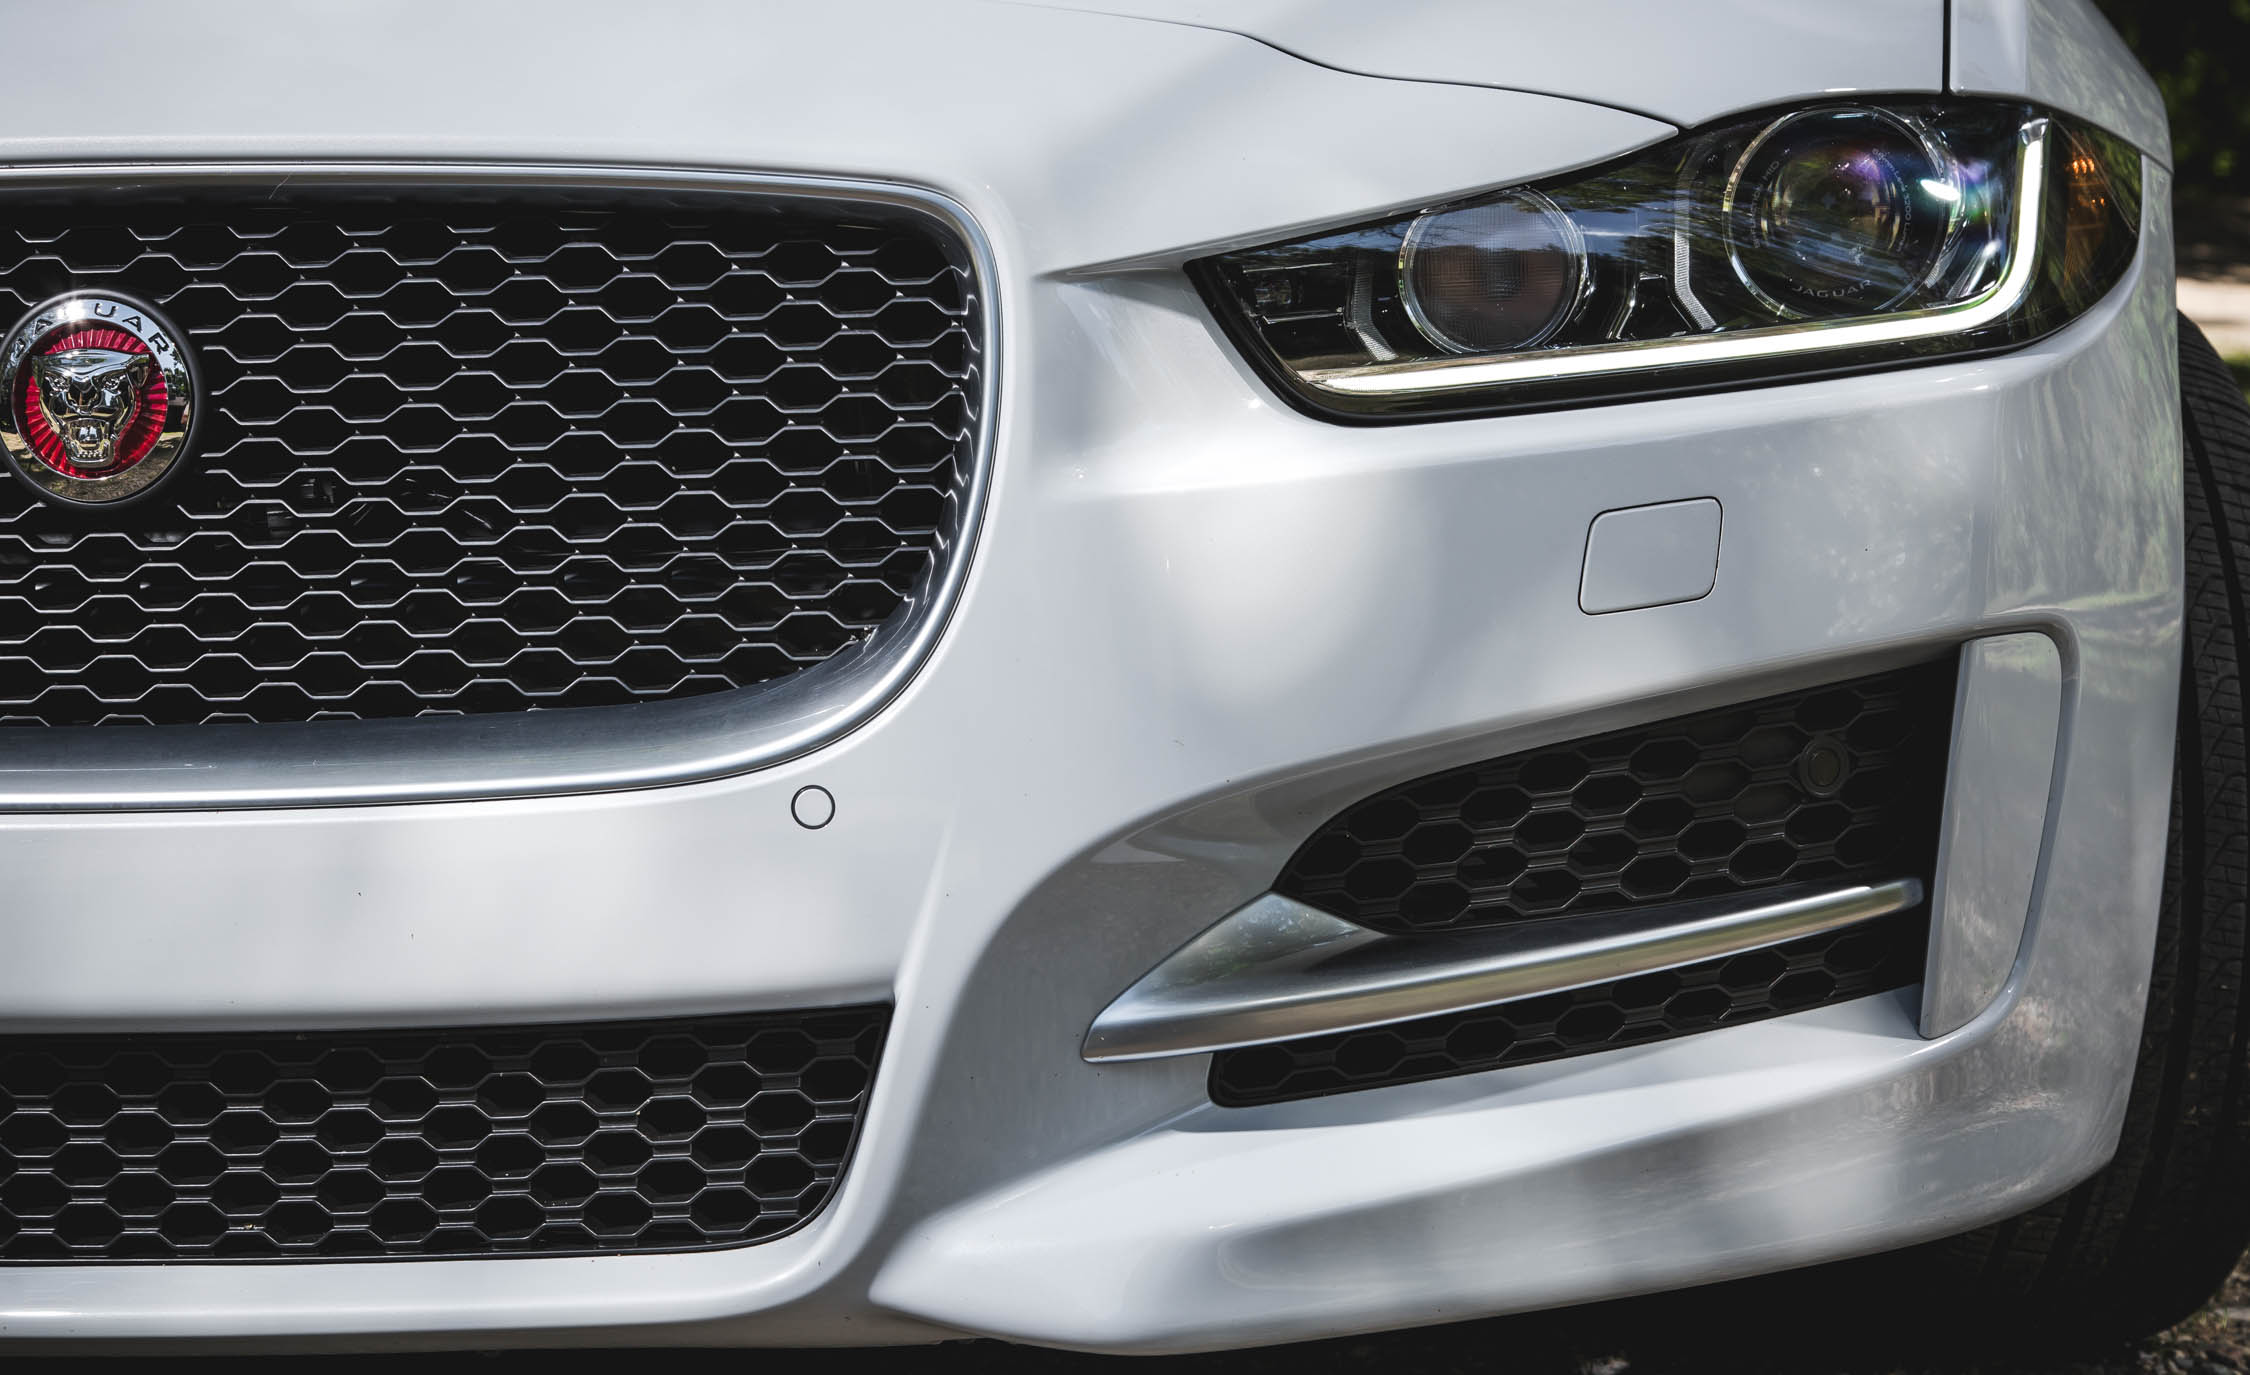 2017 Jaguar Xe White Exterior View Headlight And Grille (Photo 28 of 32)